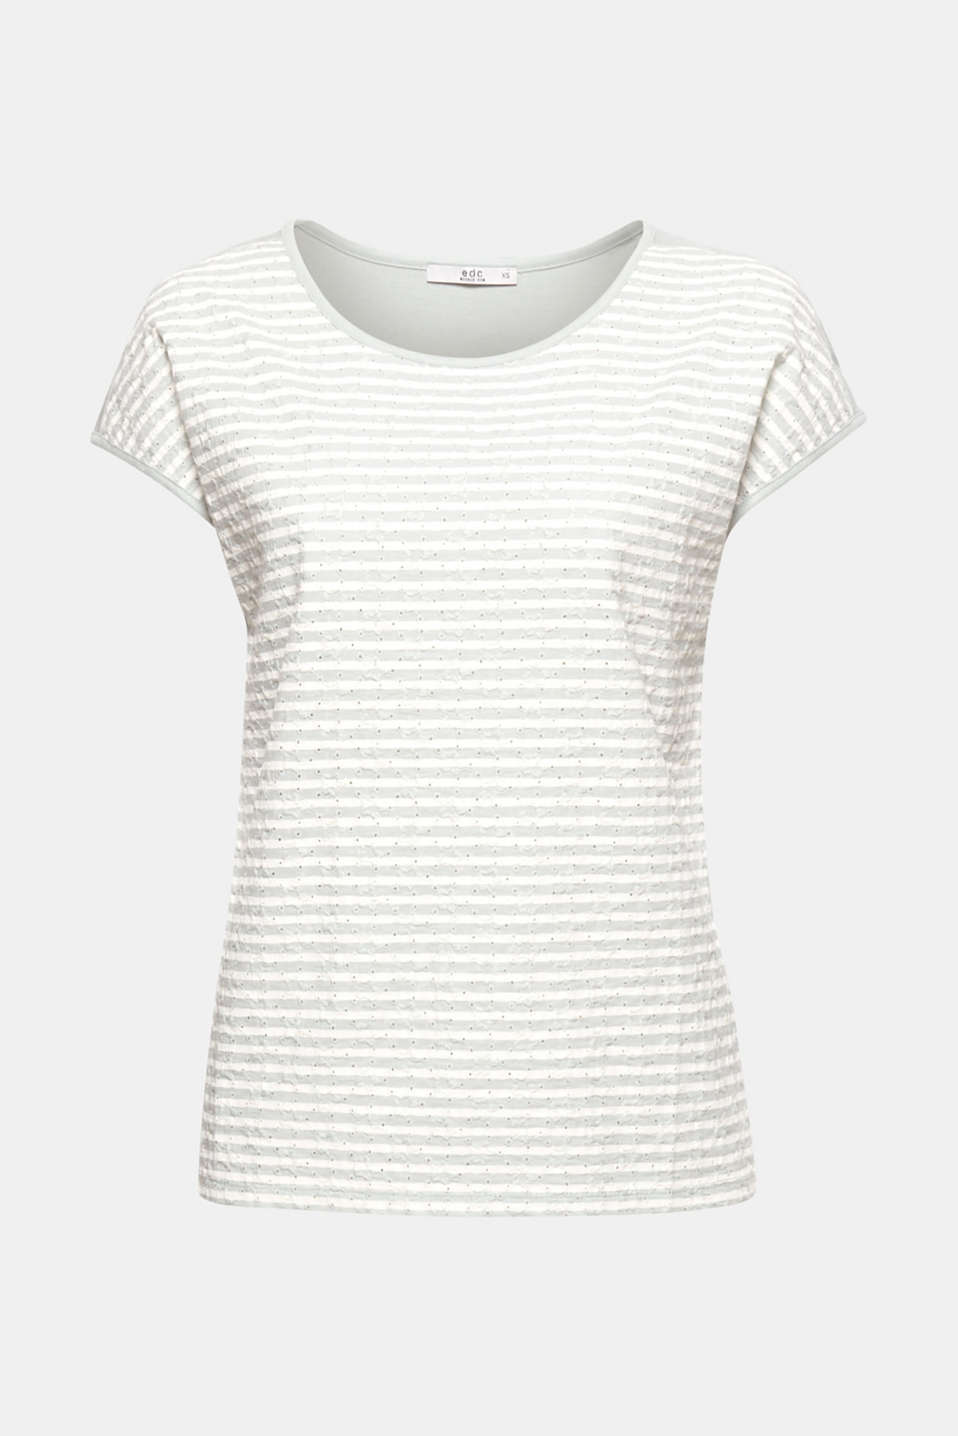 In a plain colour or with stripes, the embroidered fabric section at the front gives this light and airy T-shirt its pretty edge!